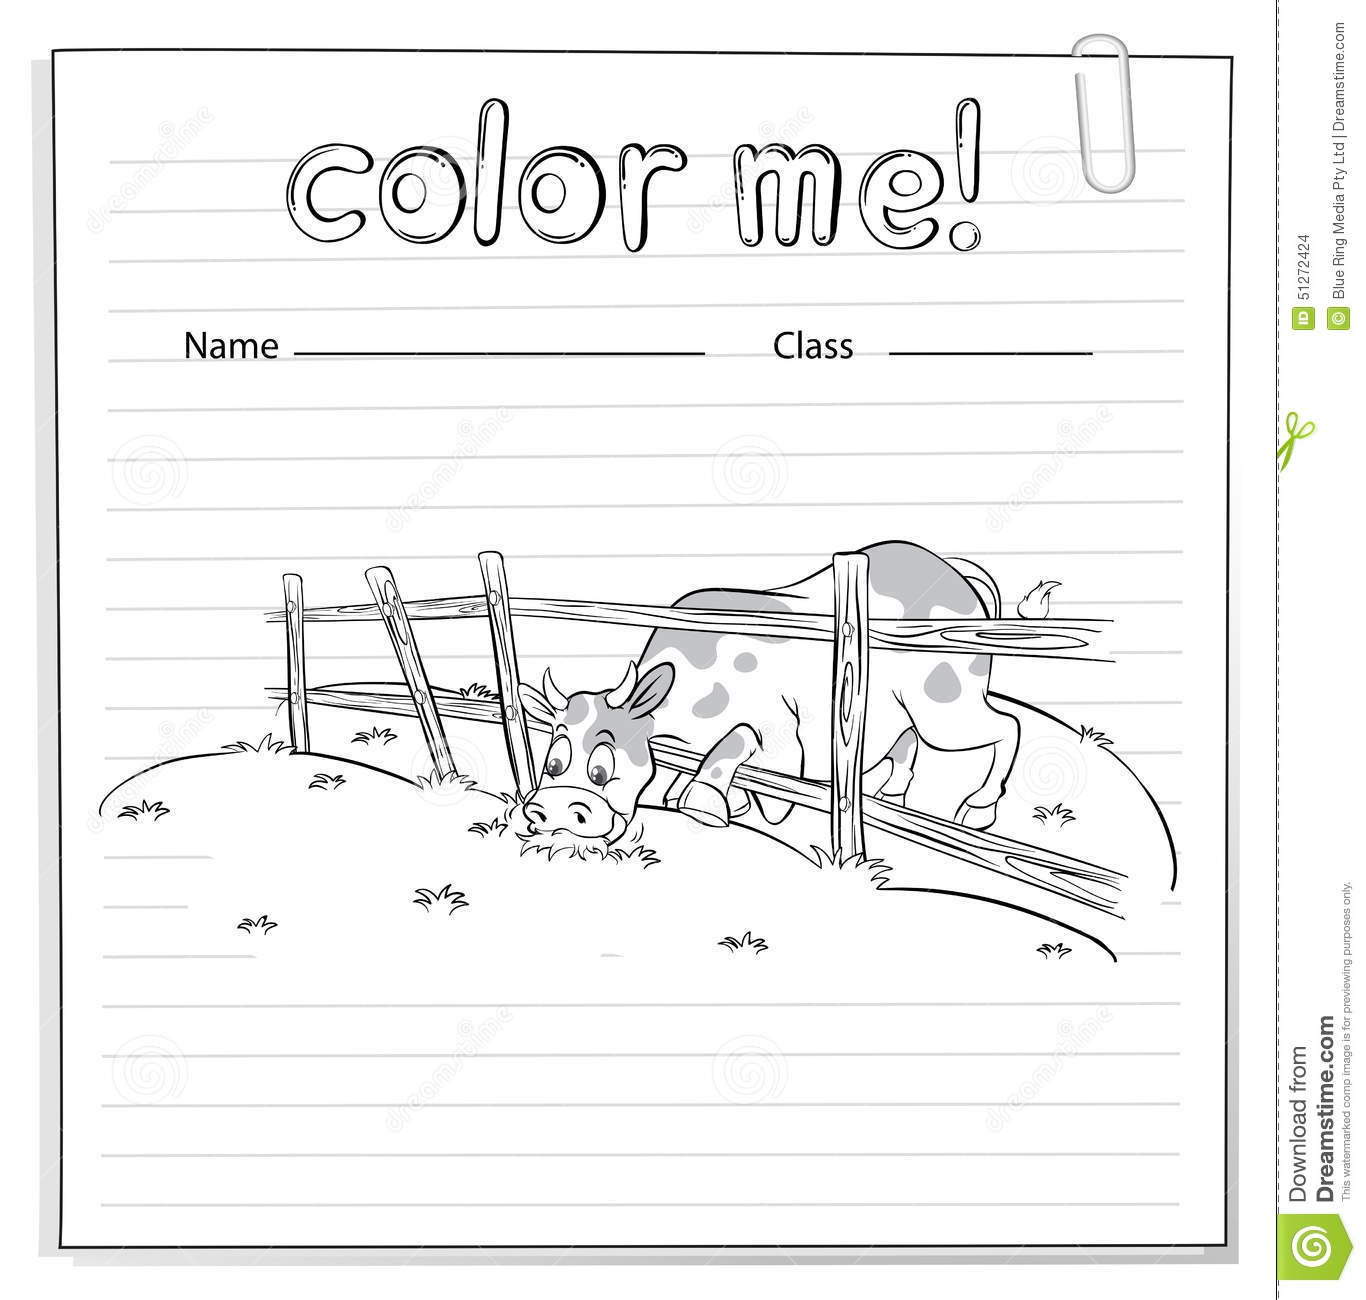 Coloring Worksheet With A Cow Stock Vector